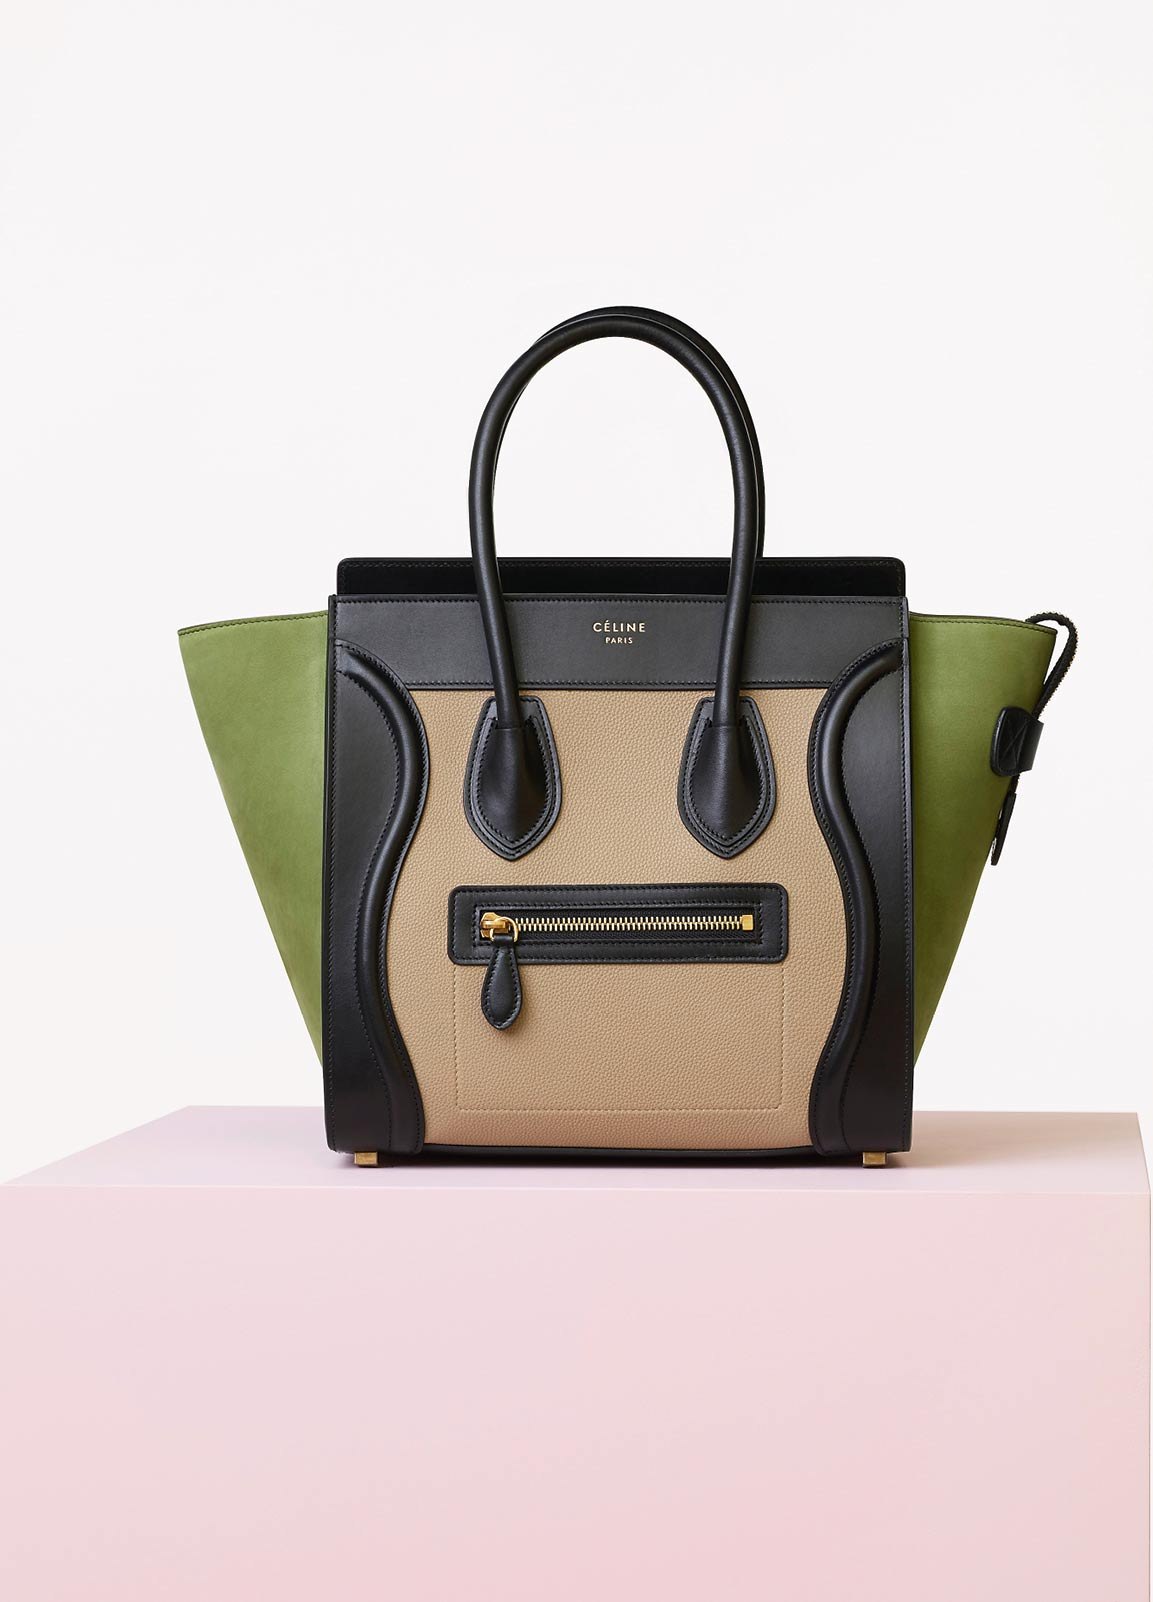 celine handbags on sale - Celine Resort 2016 Bag Collection Featuring New Saddle Bags ...